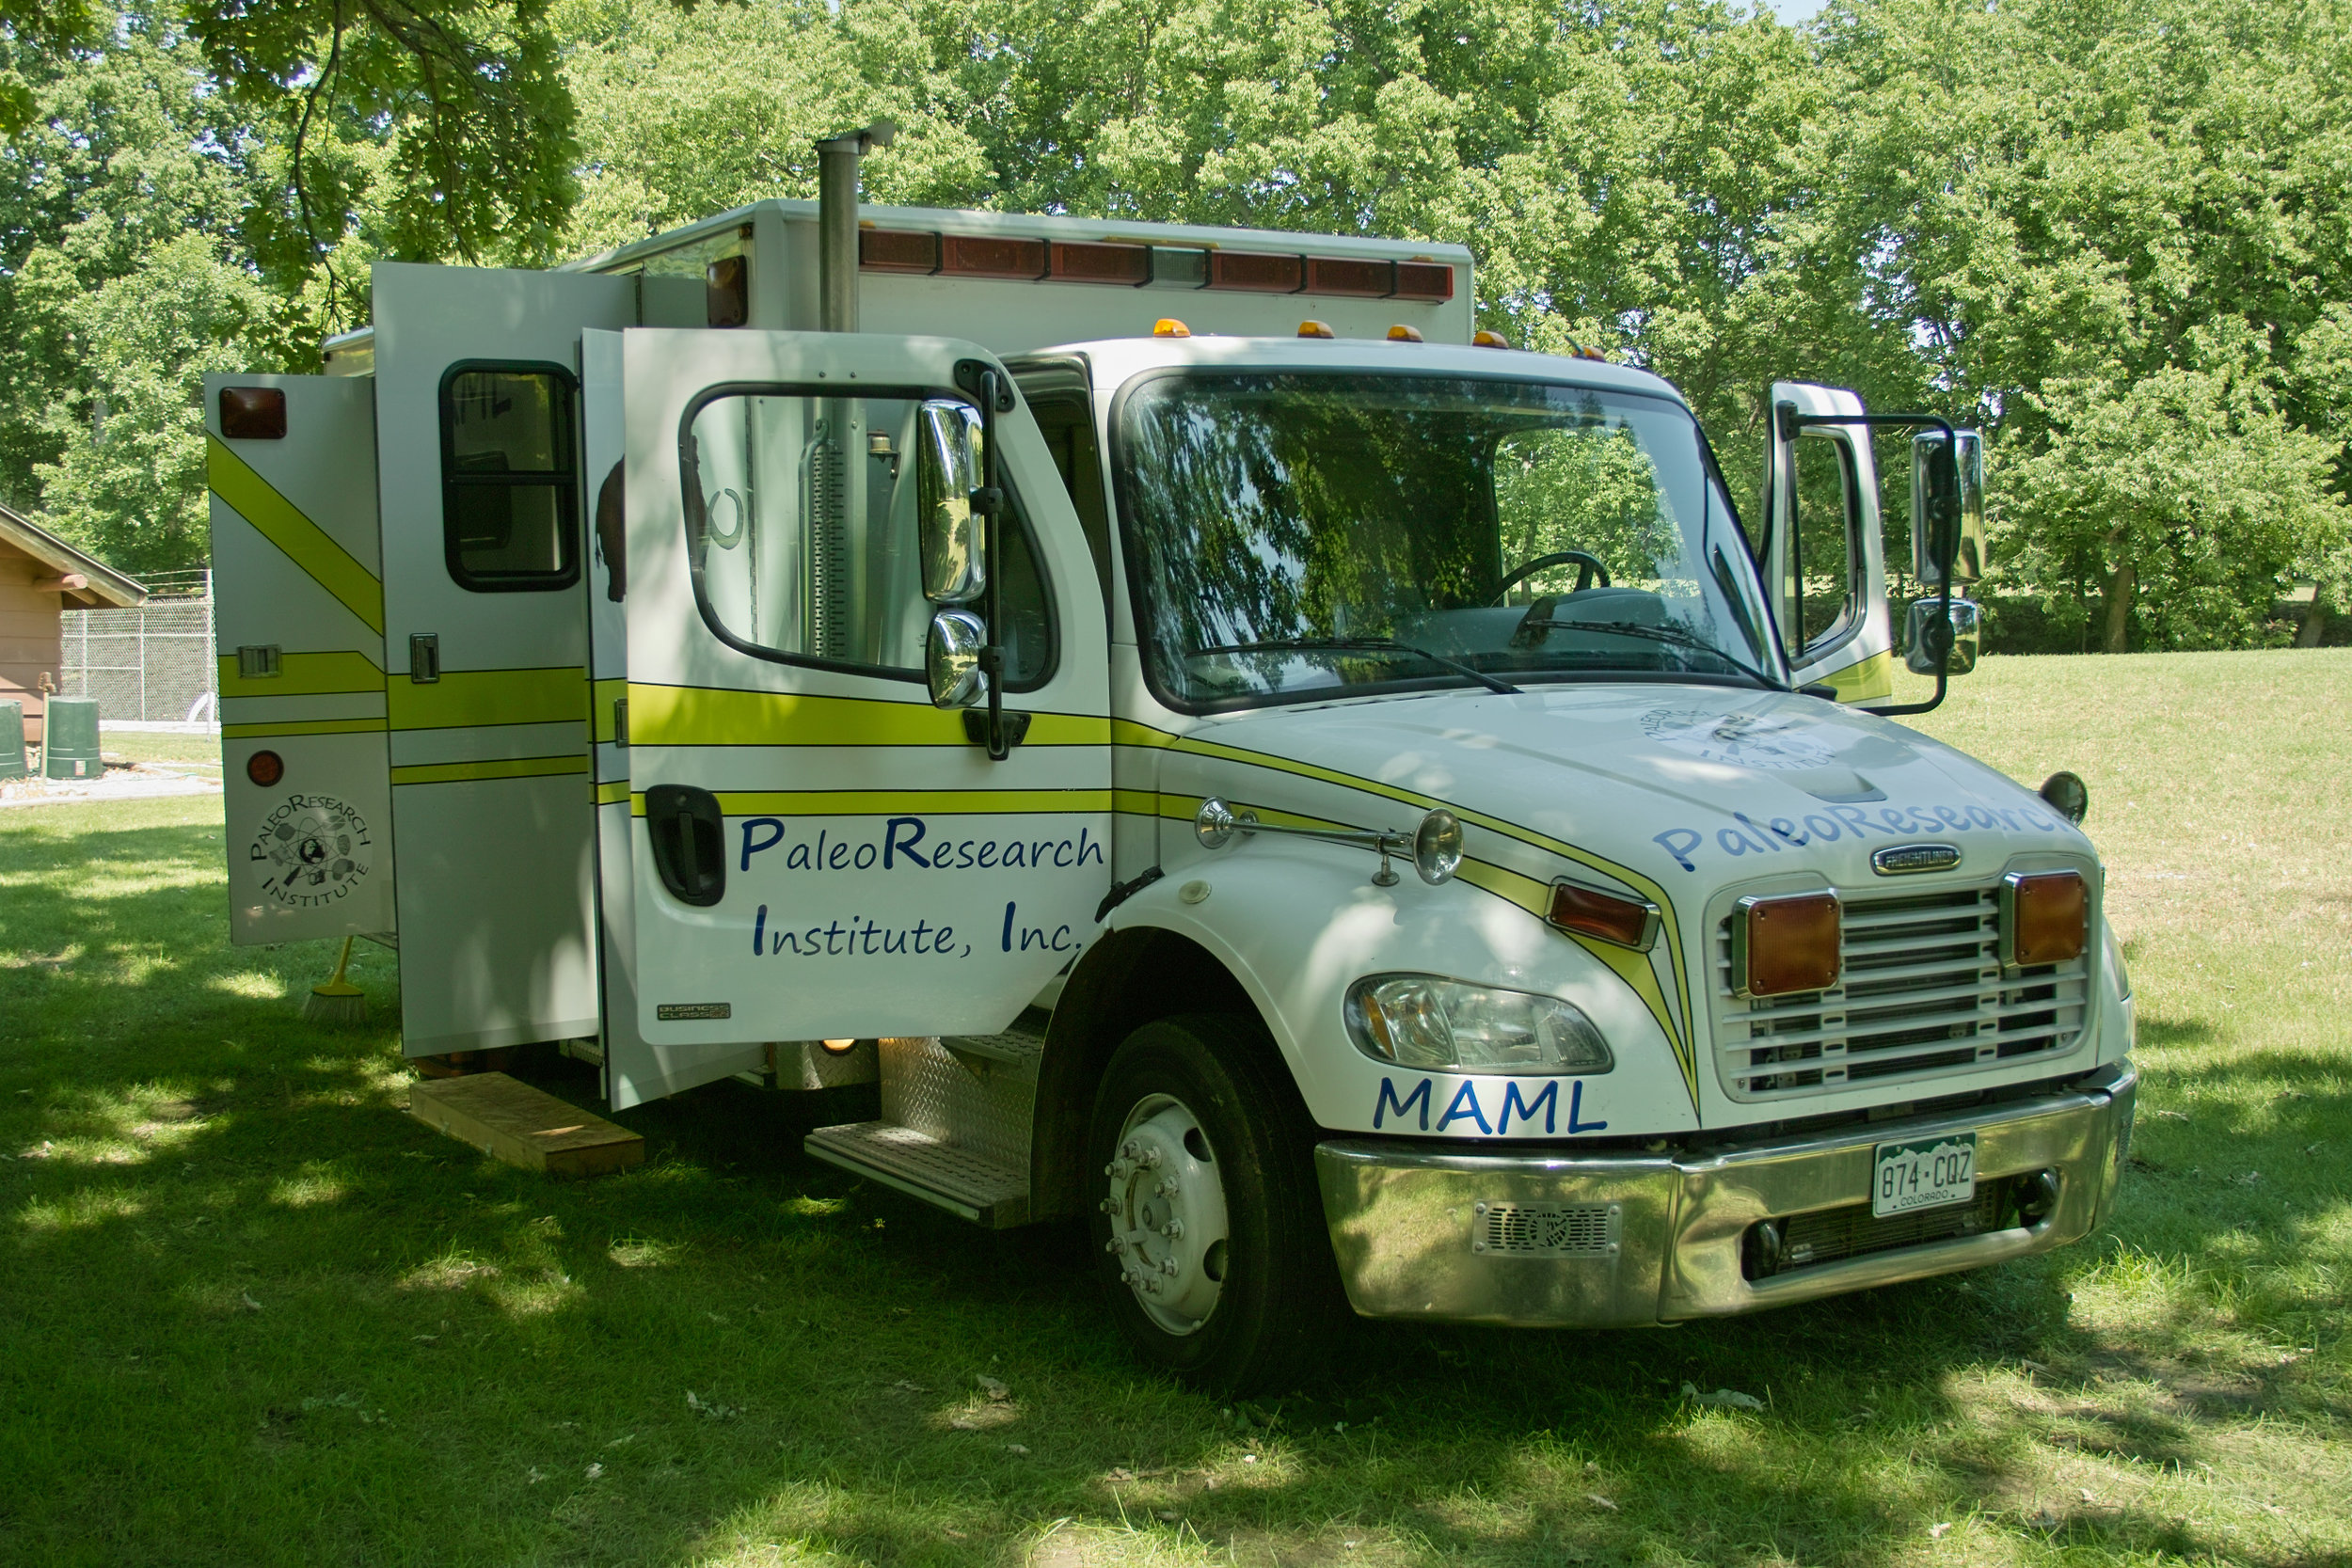 Mobile Archaeological Microforensic Lab (MAML)